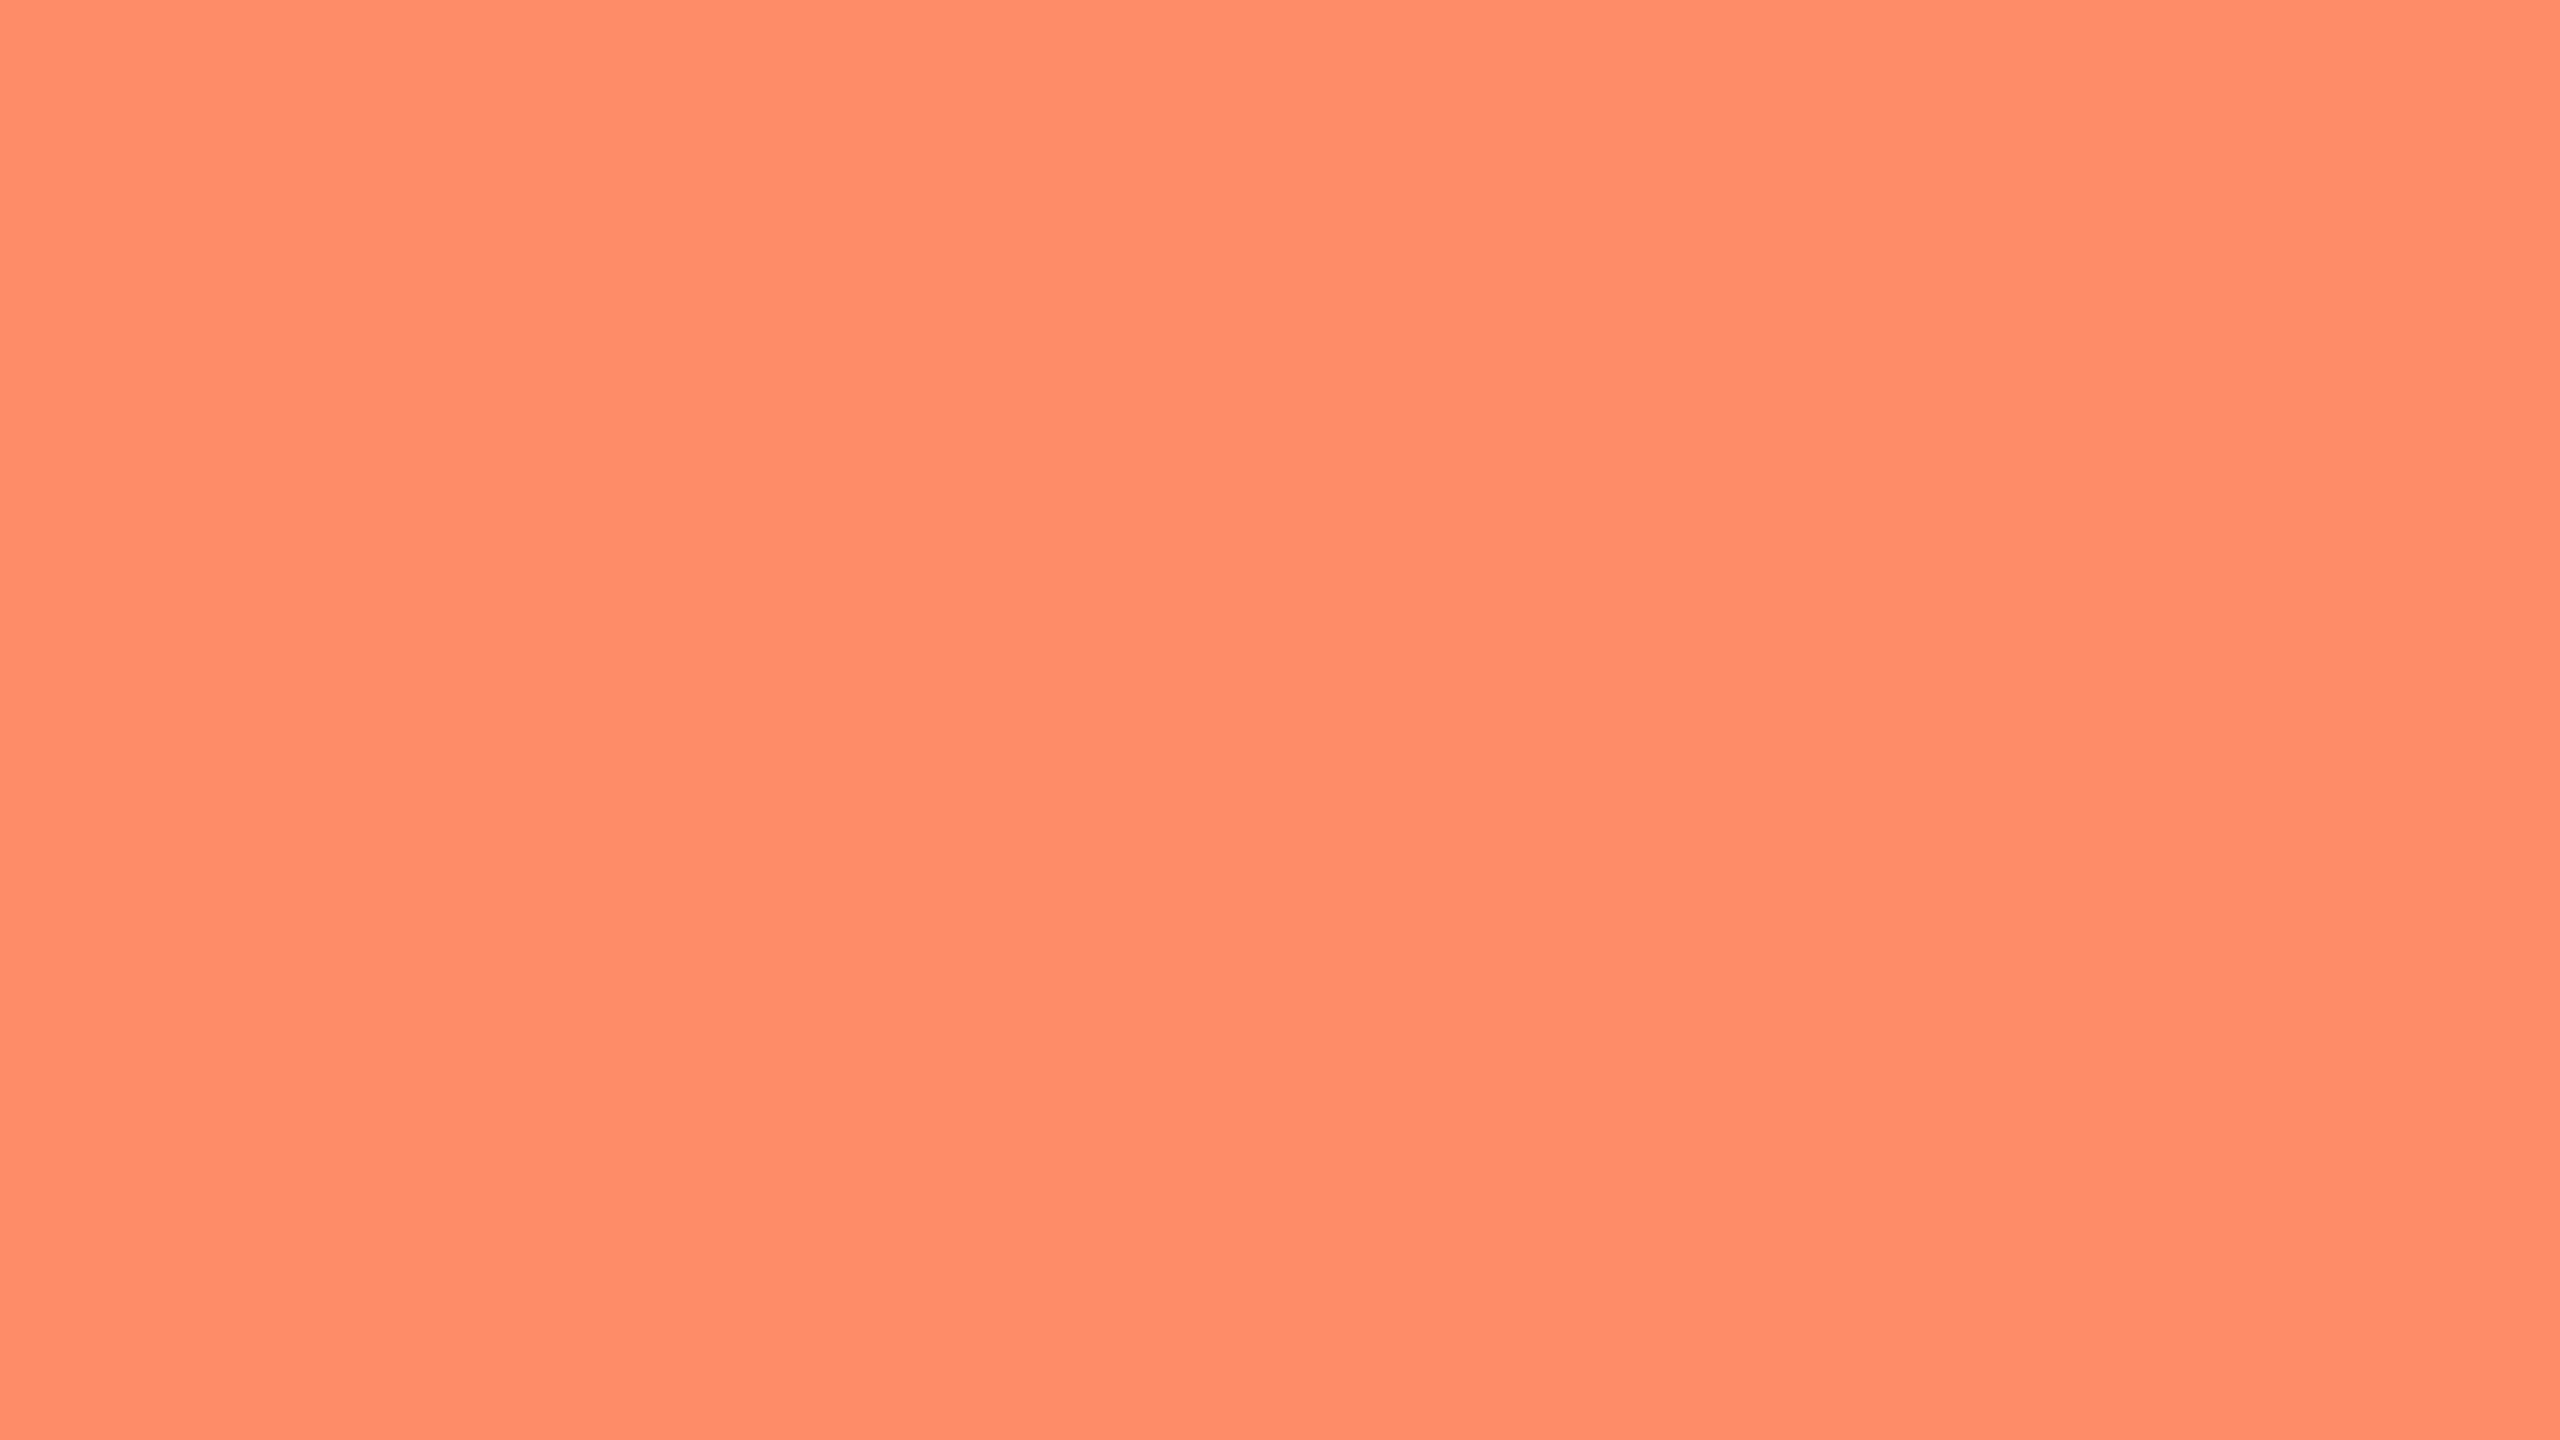 2560x1440 Salmon Solid Color Background